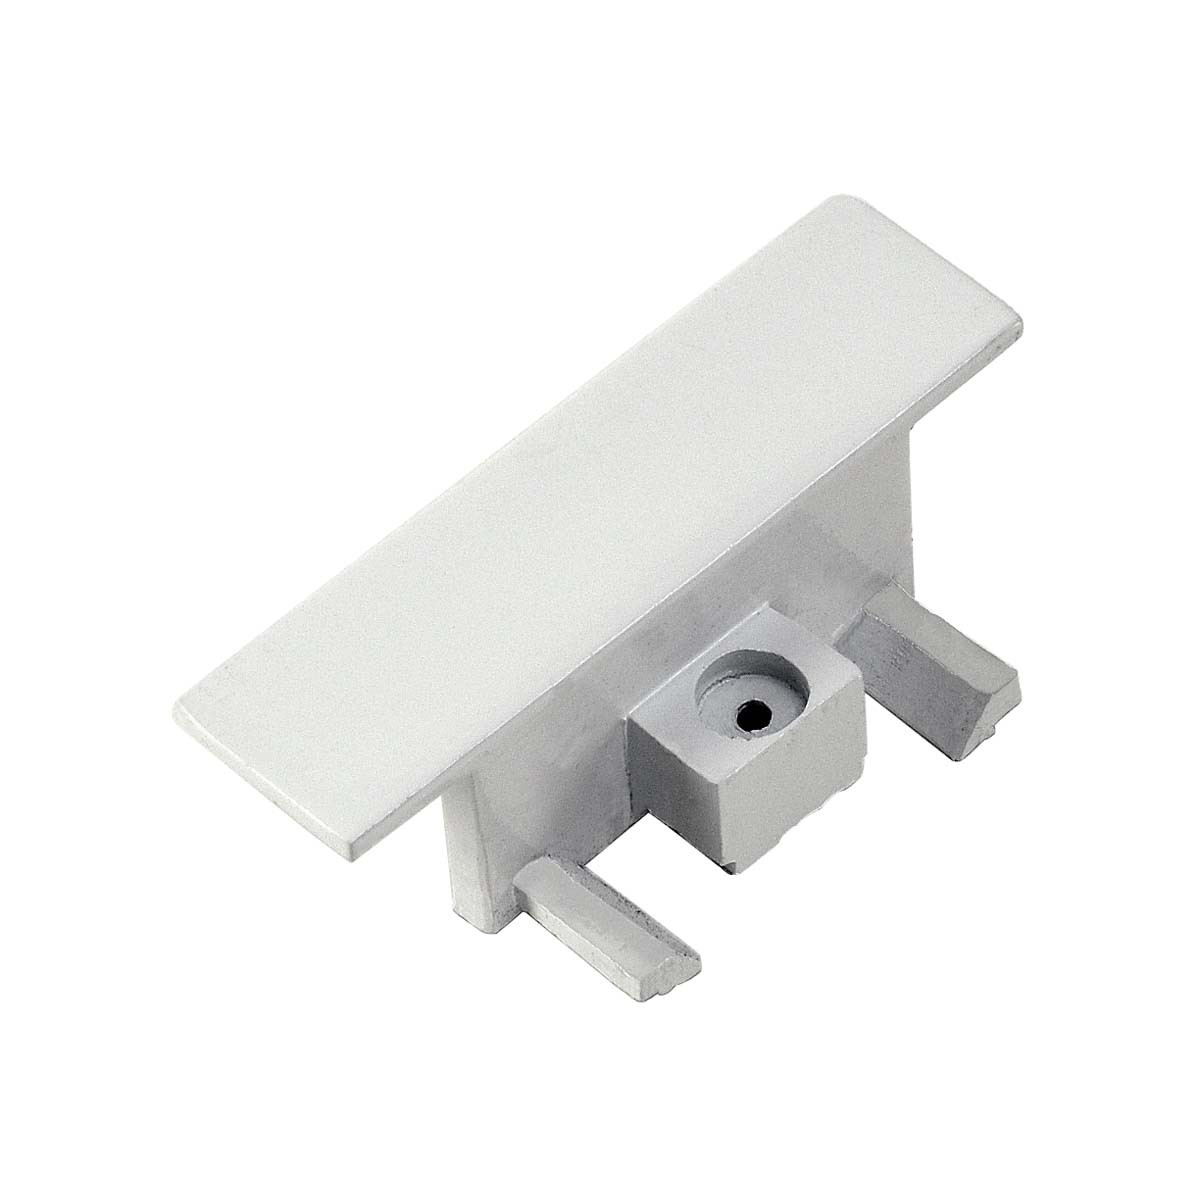 SLV 143281 End Caps White 1 Circuit 240V Recessed Track Accessory